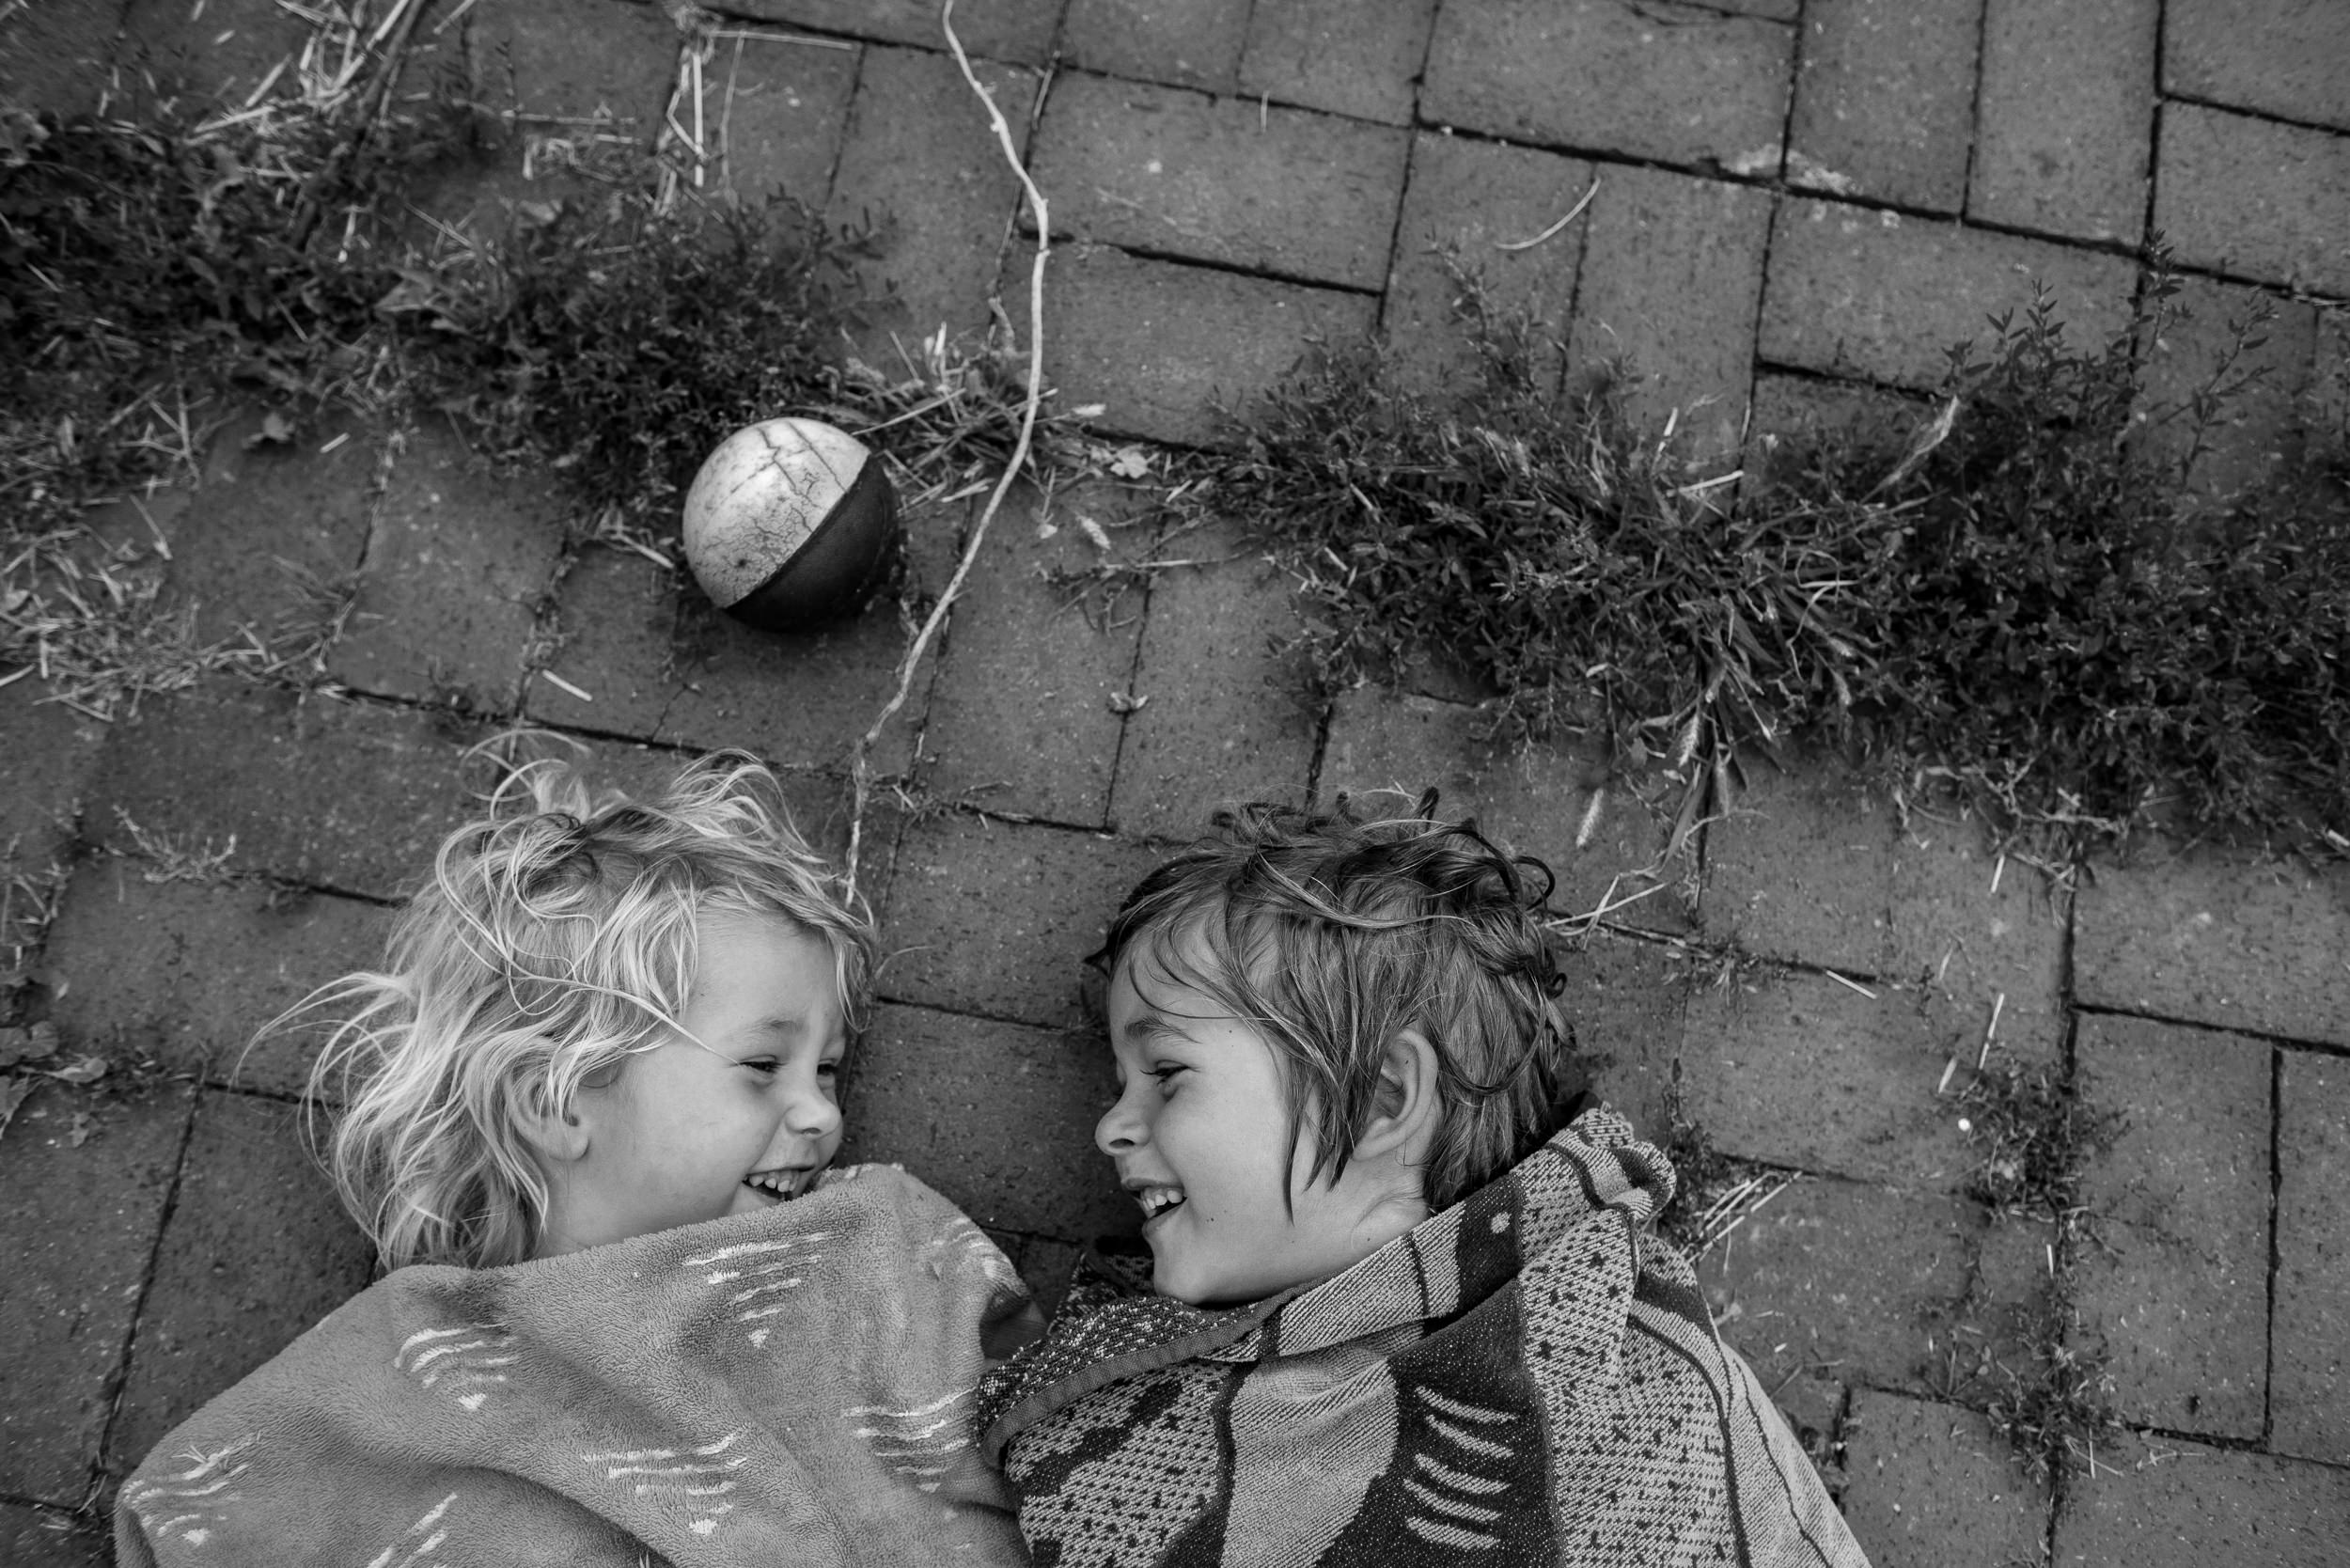 Molly Rees Photo - Black and White Documentary Childhood Photography - Overhead siblings portrait of children laughing by M. Menschel